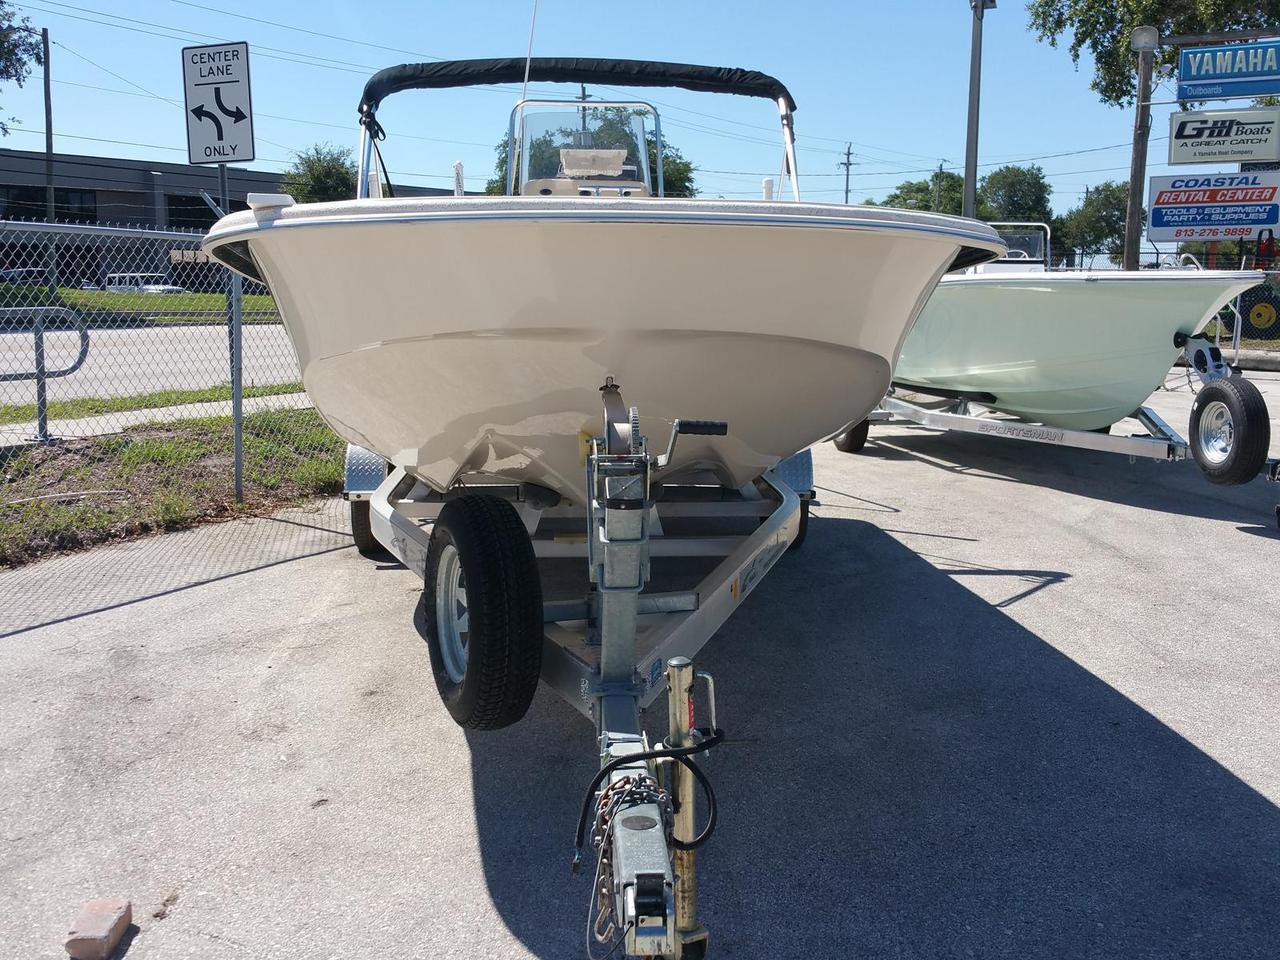 2015 Used Carolina Skiff Dlv 218 Bay Boat For Sale